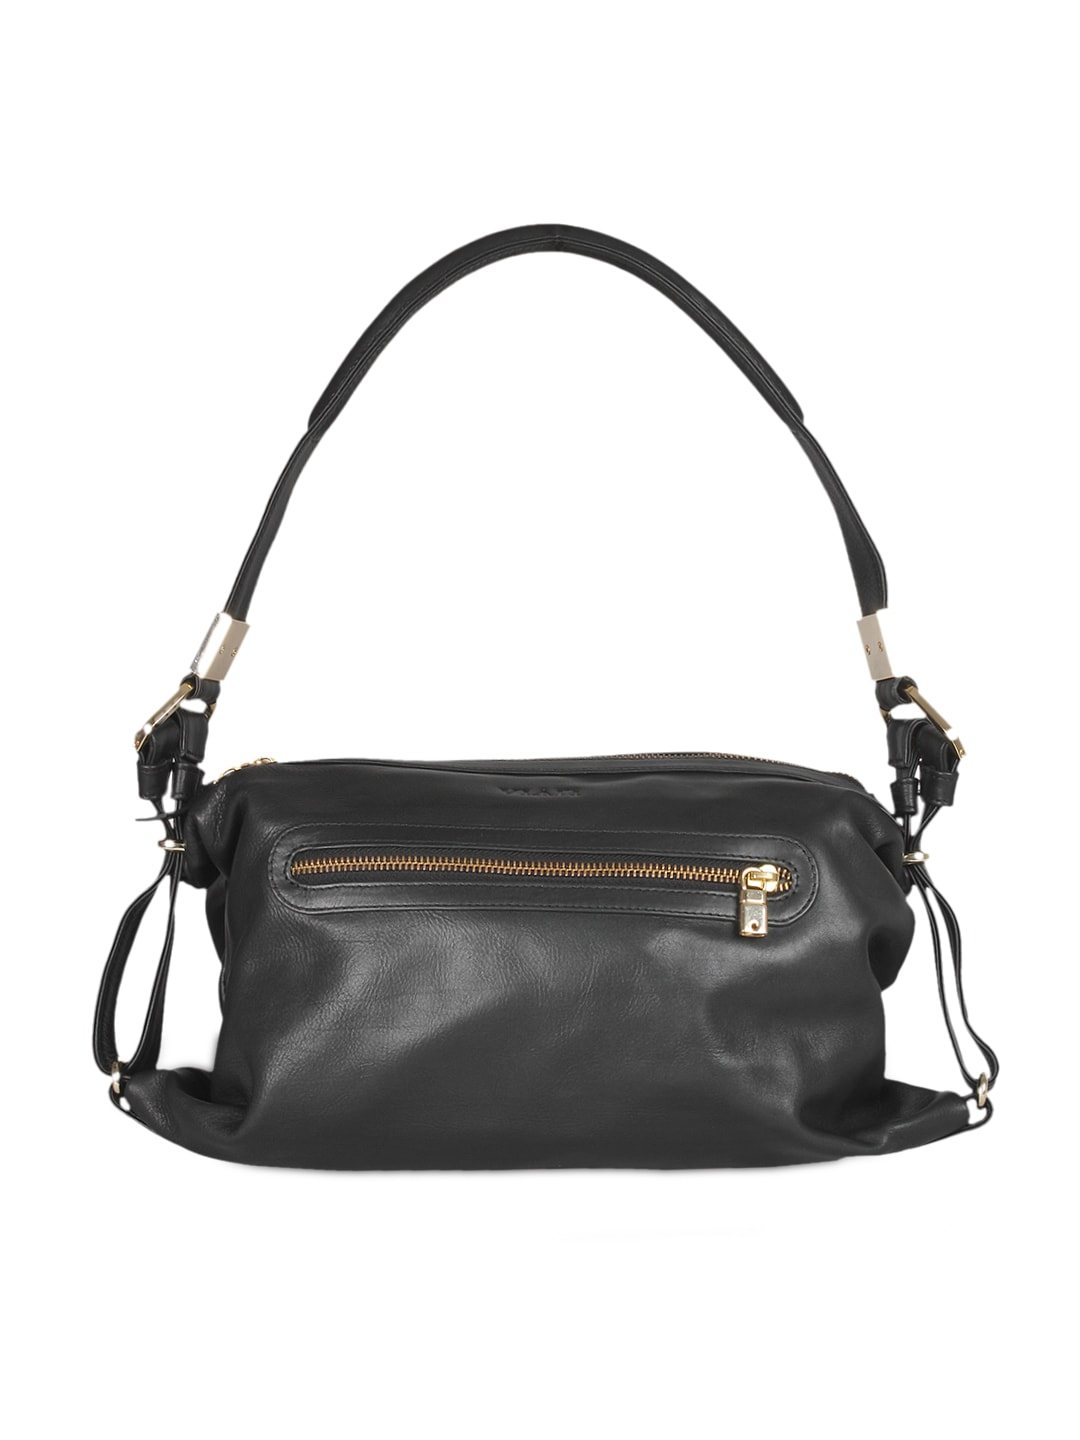 40%off VIARI Black CANNES Leather Handbag